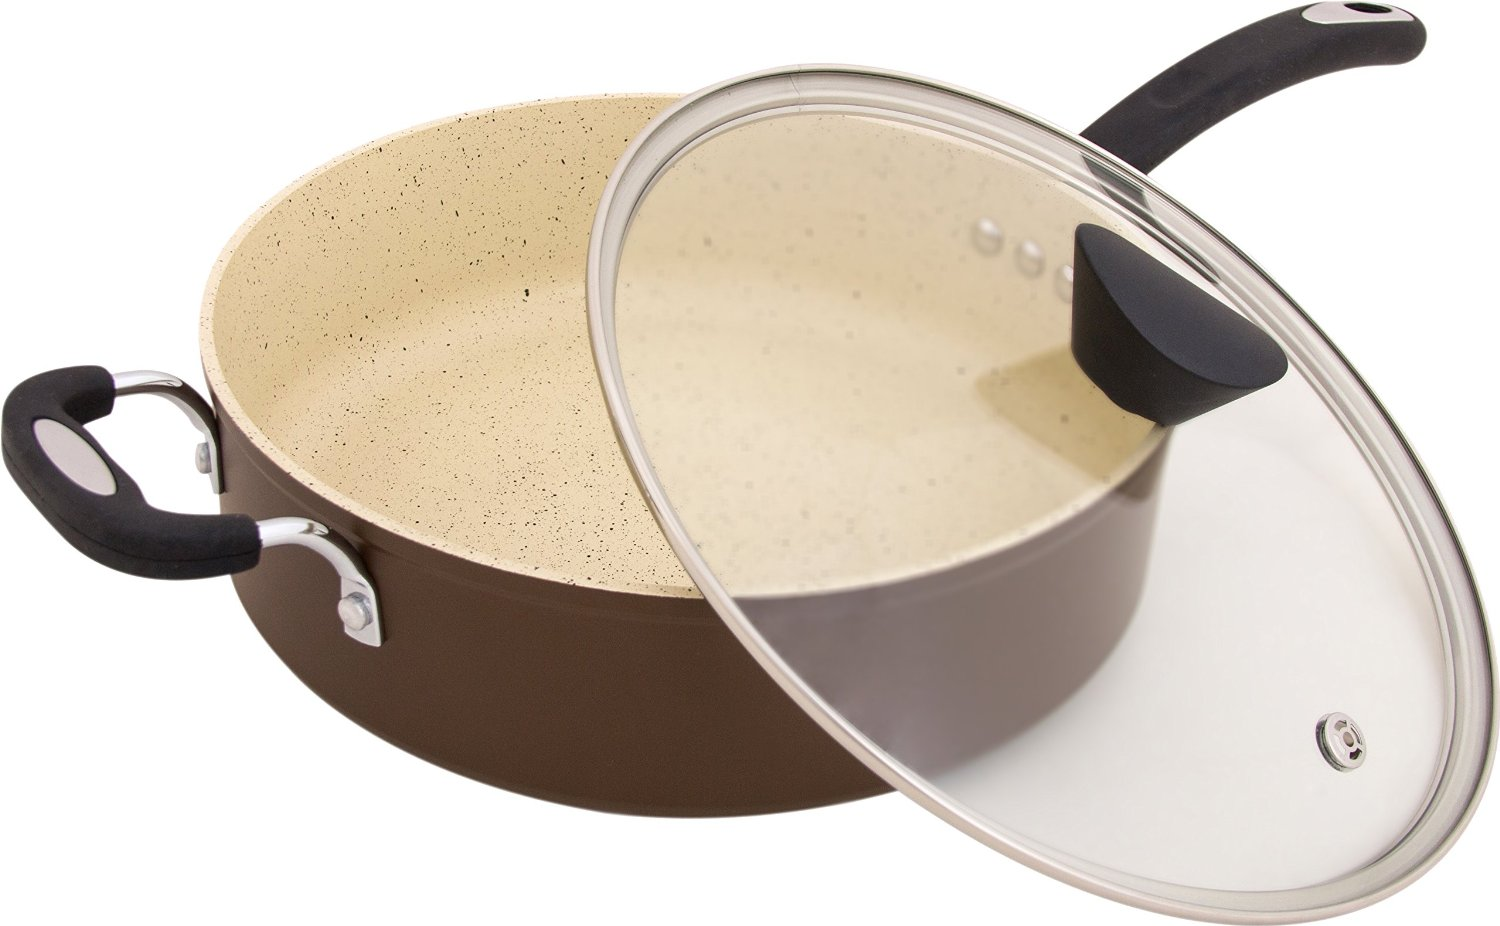 Ozeri Non-Stick Coating from Germany